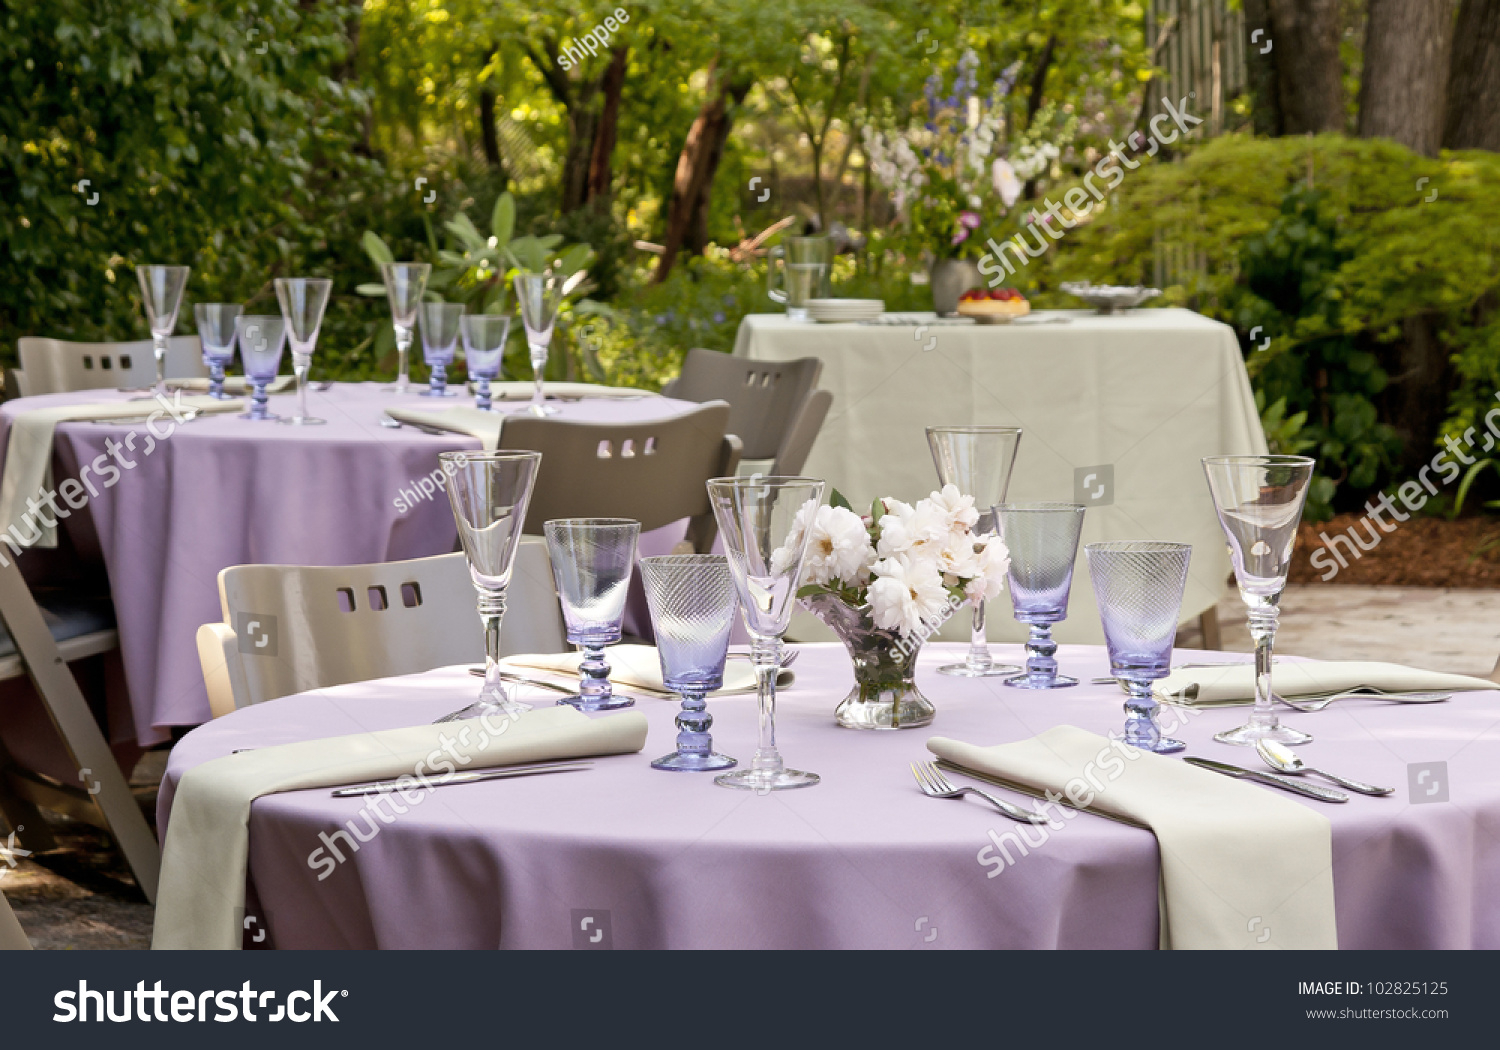 Garden Set Up For A Outdoor Party Tables With Dessert Table In The Background